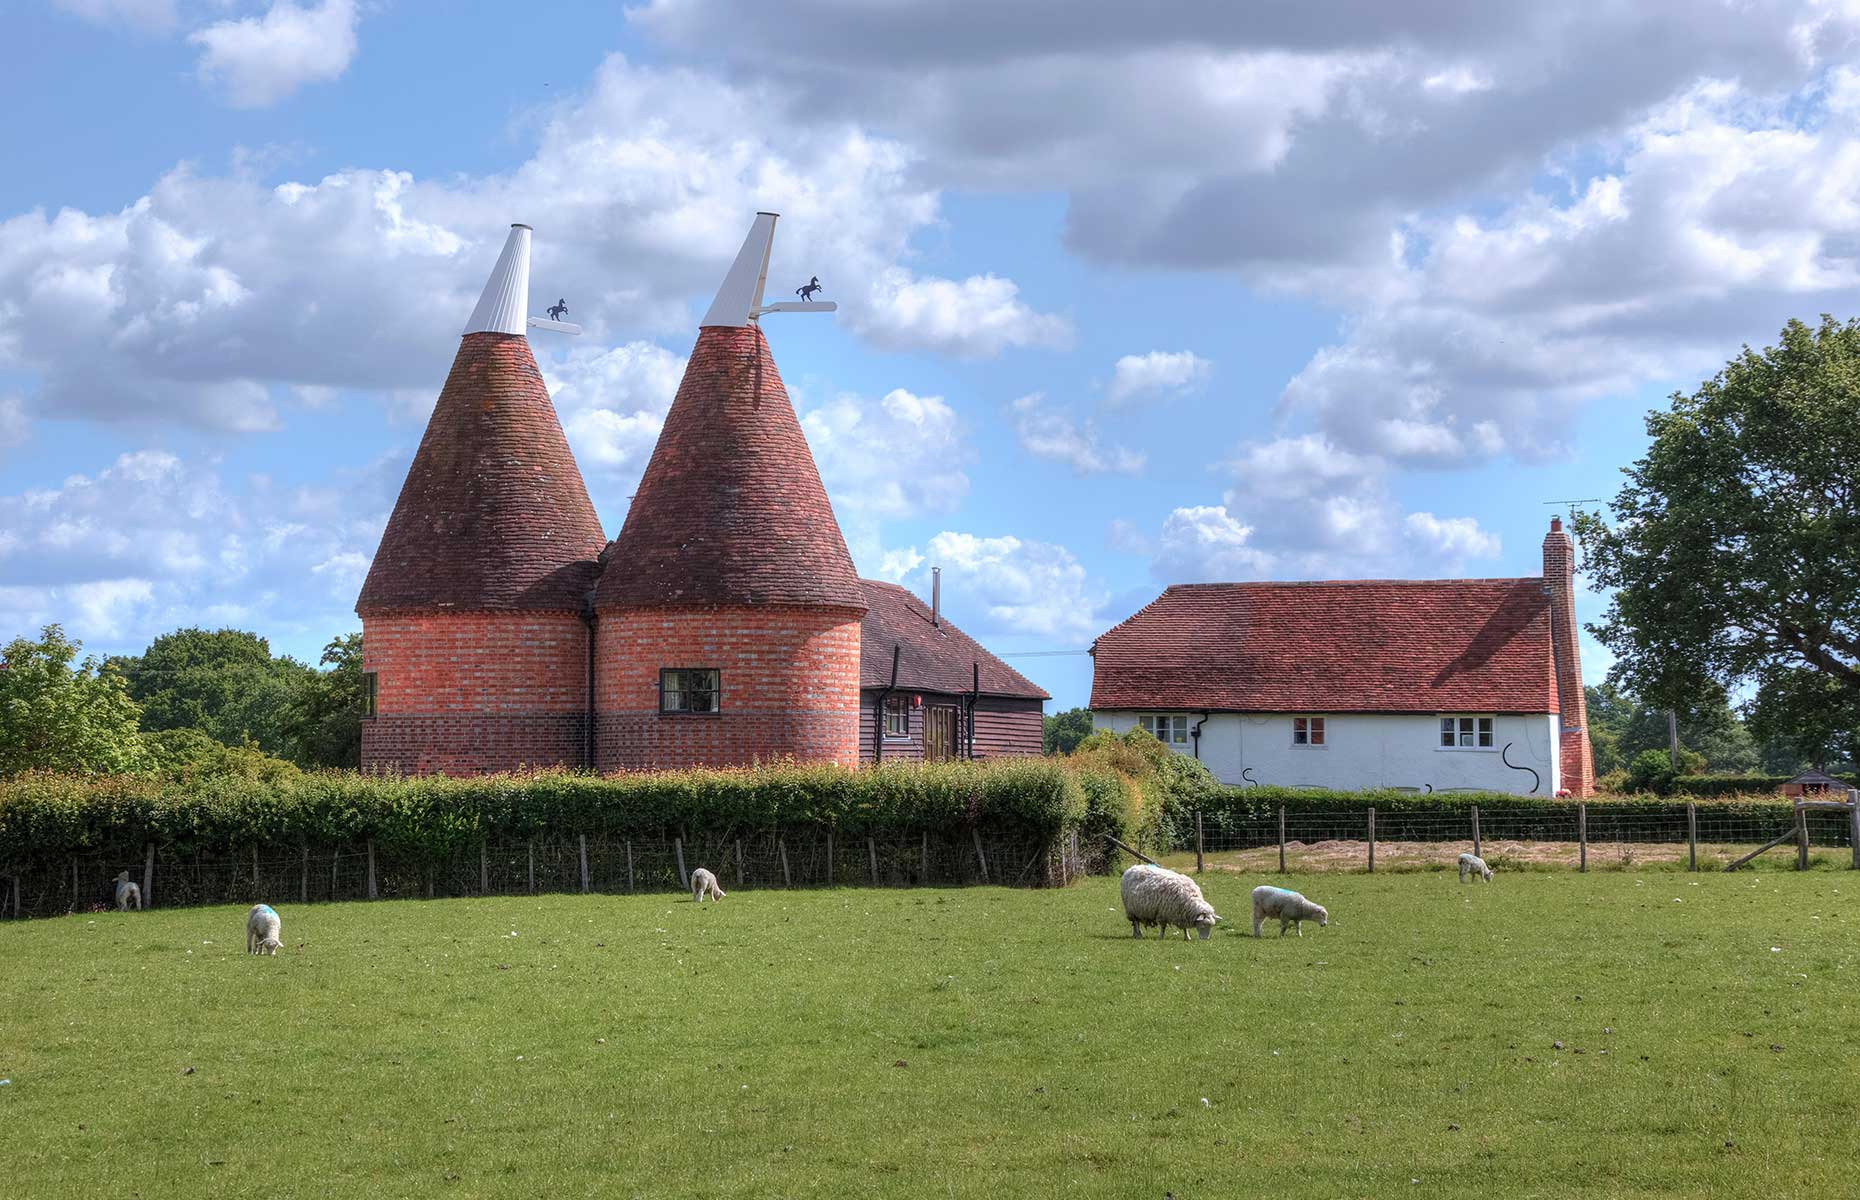 A typical oast house in Kent with sheep in the foreground (Image: Joana Kruse/Alamy Stock Photo)